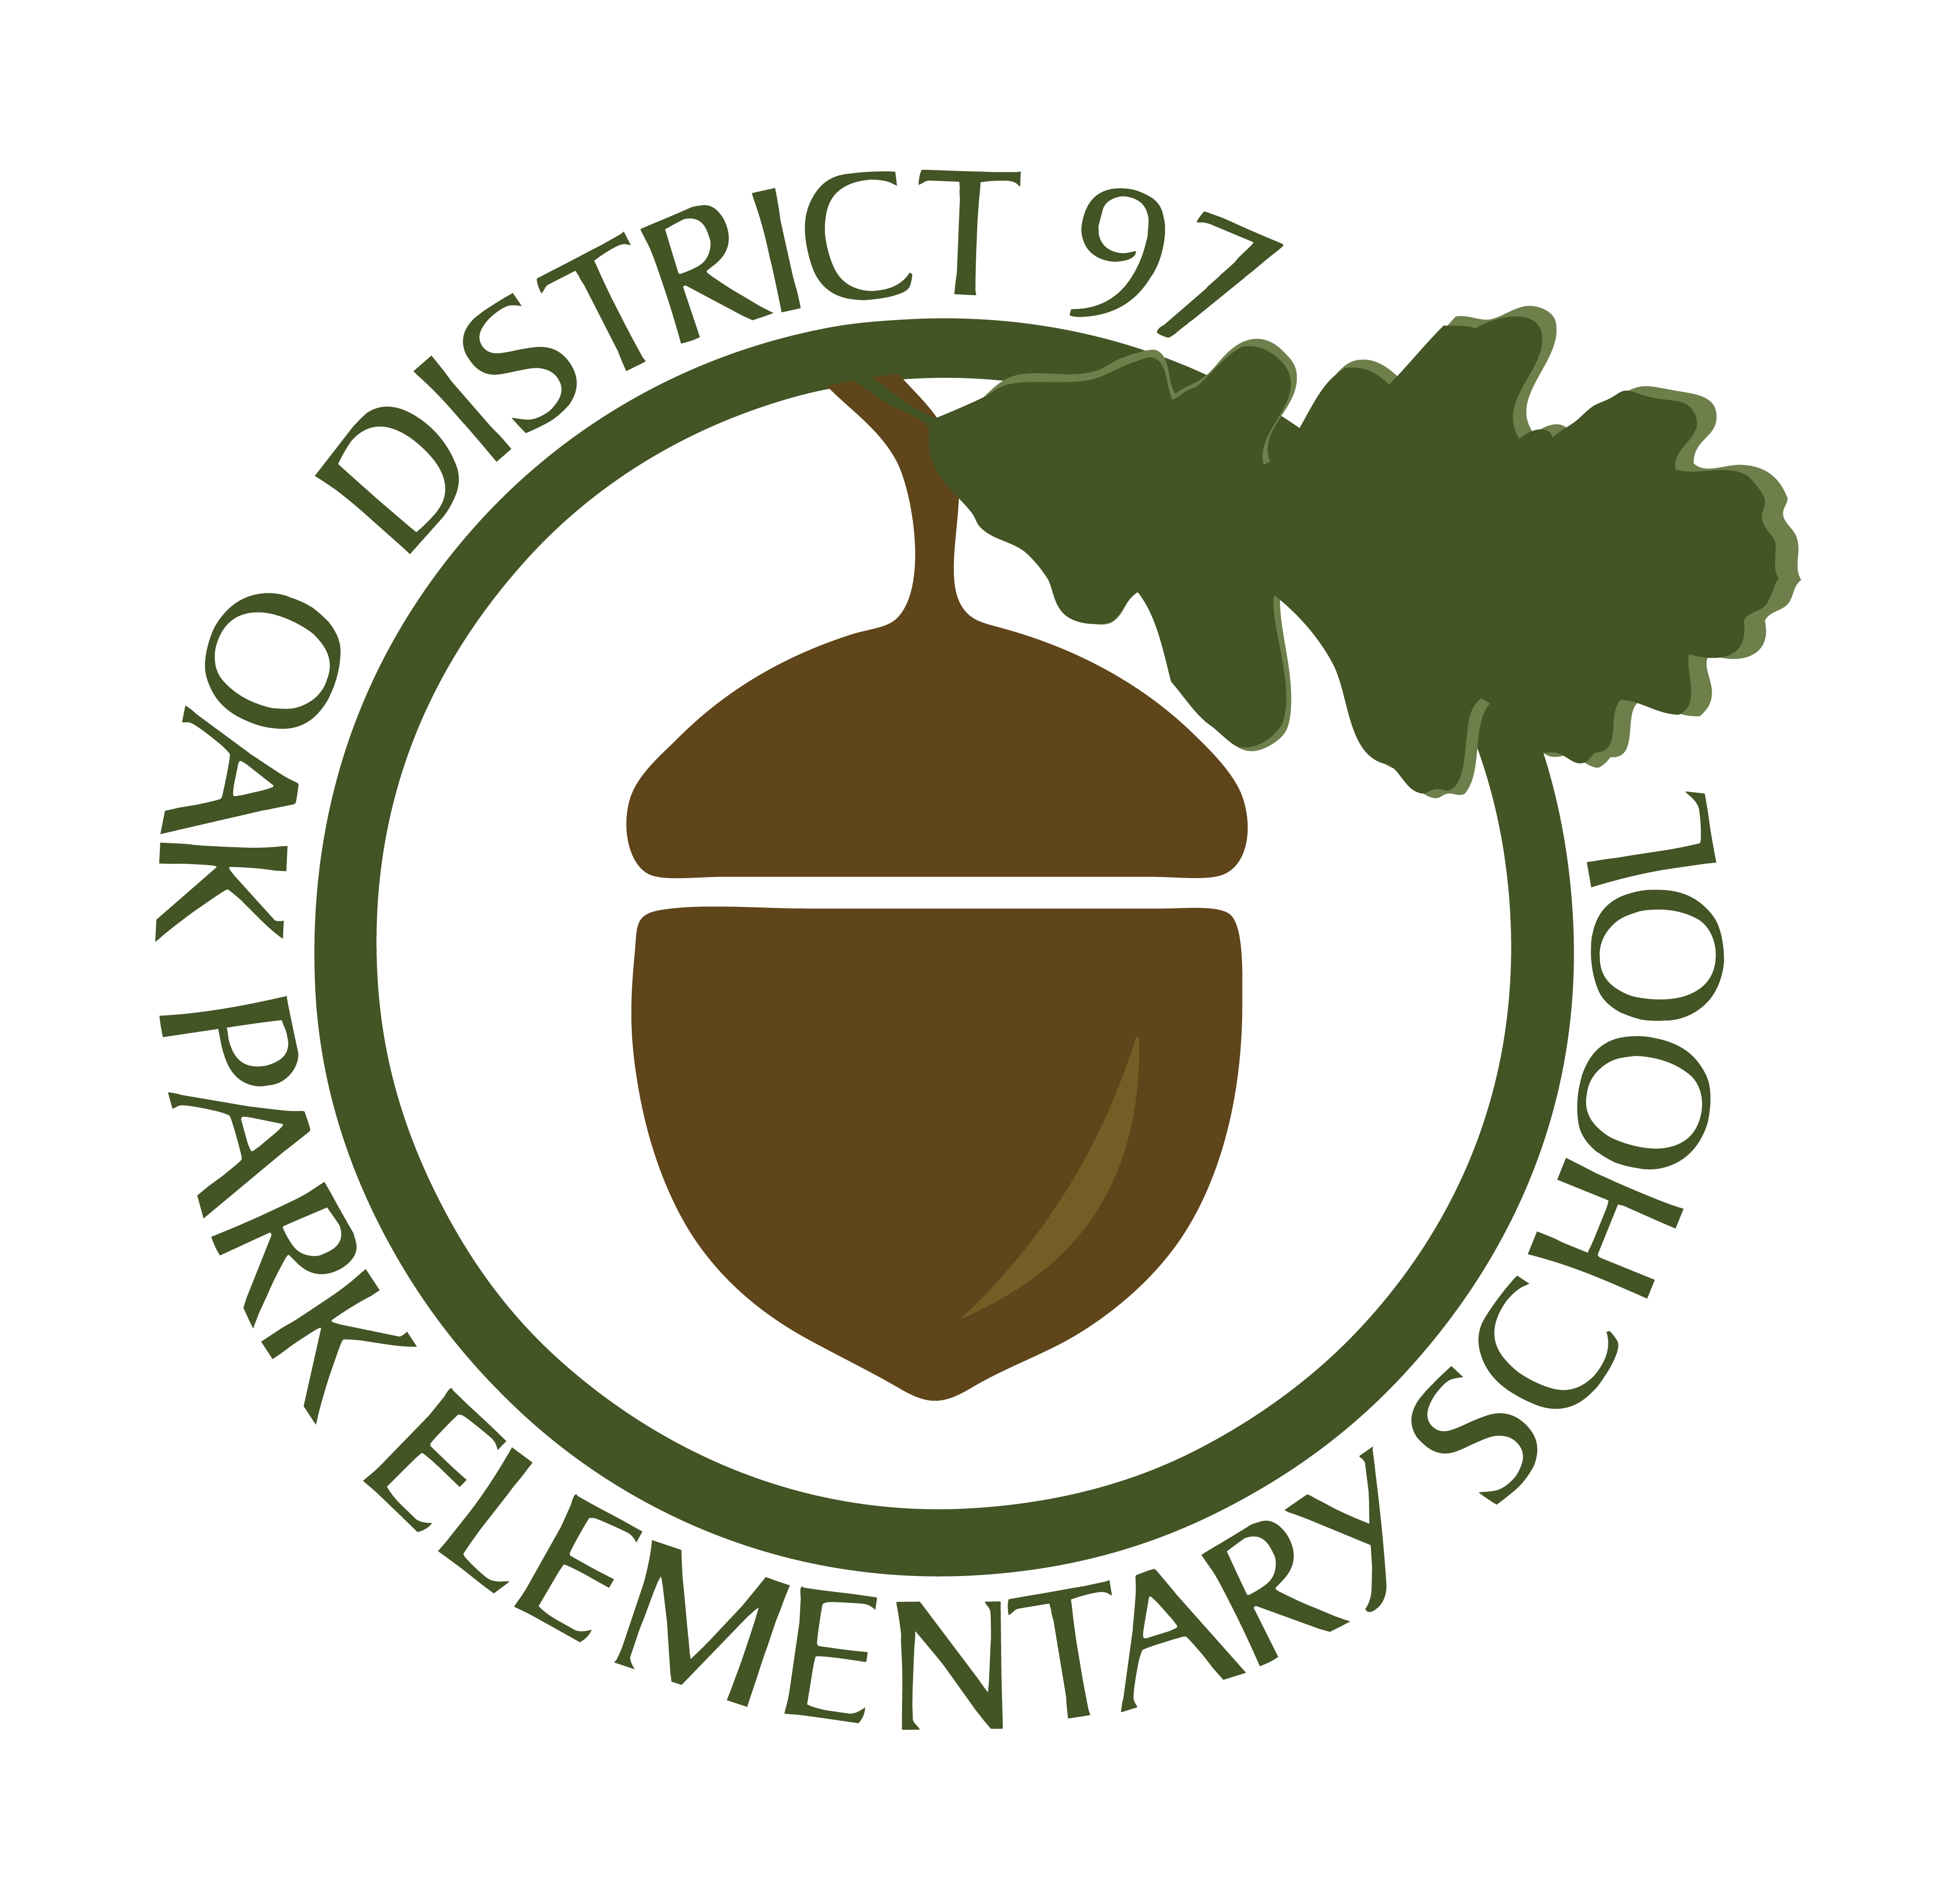 District 97 web site link